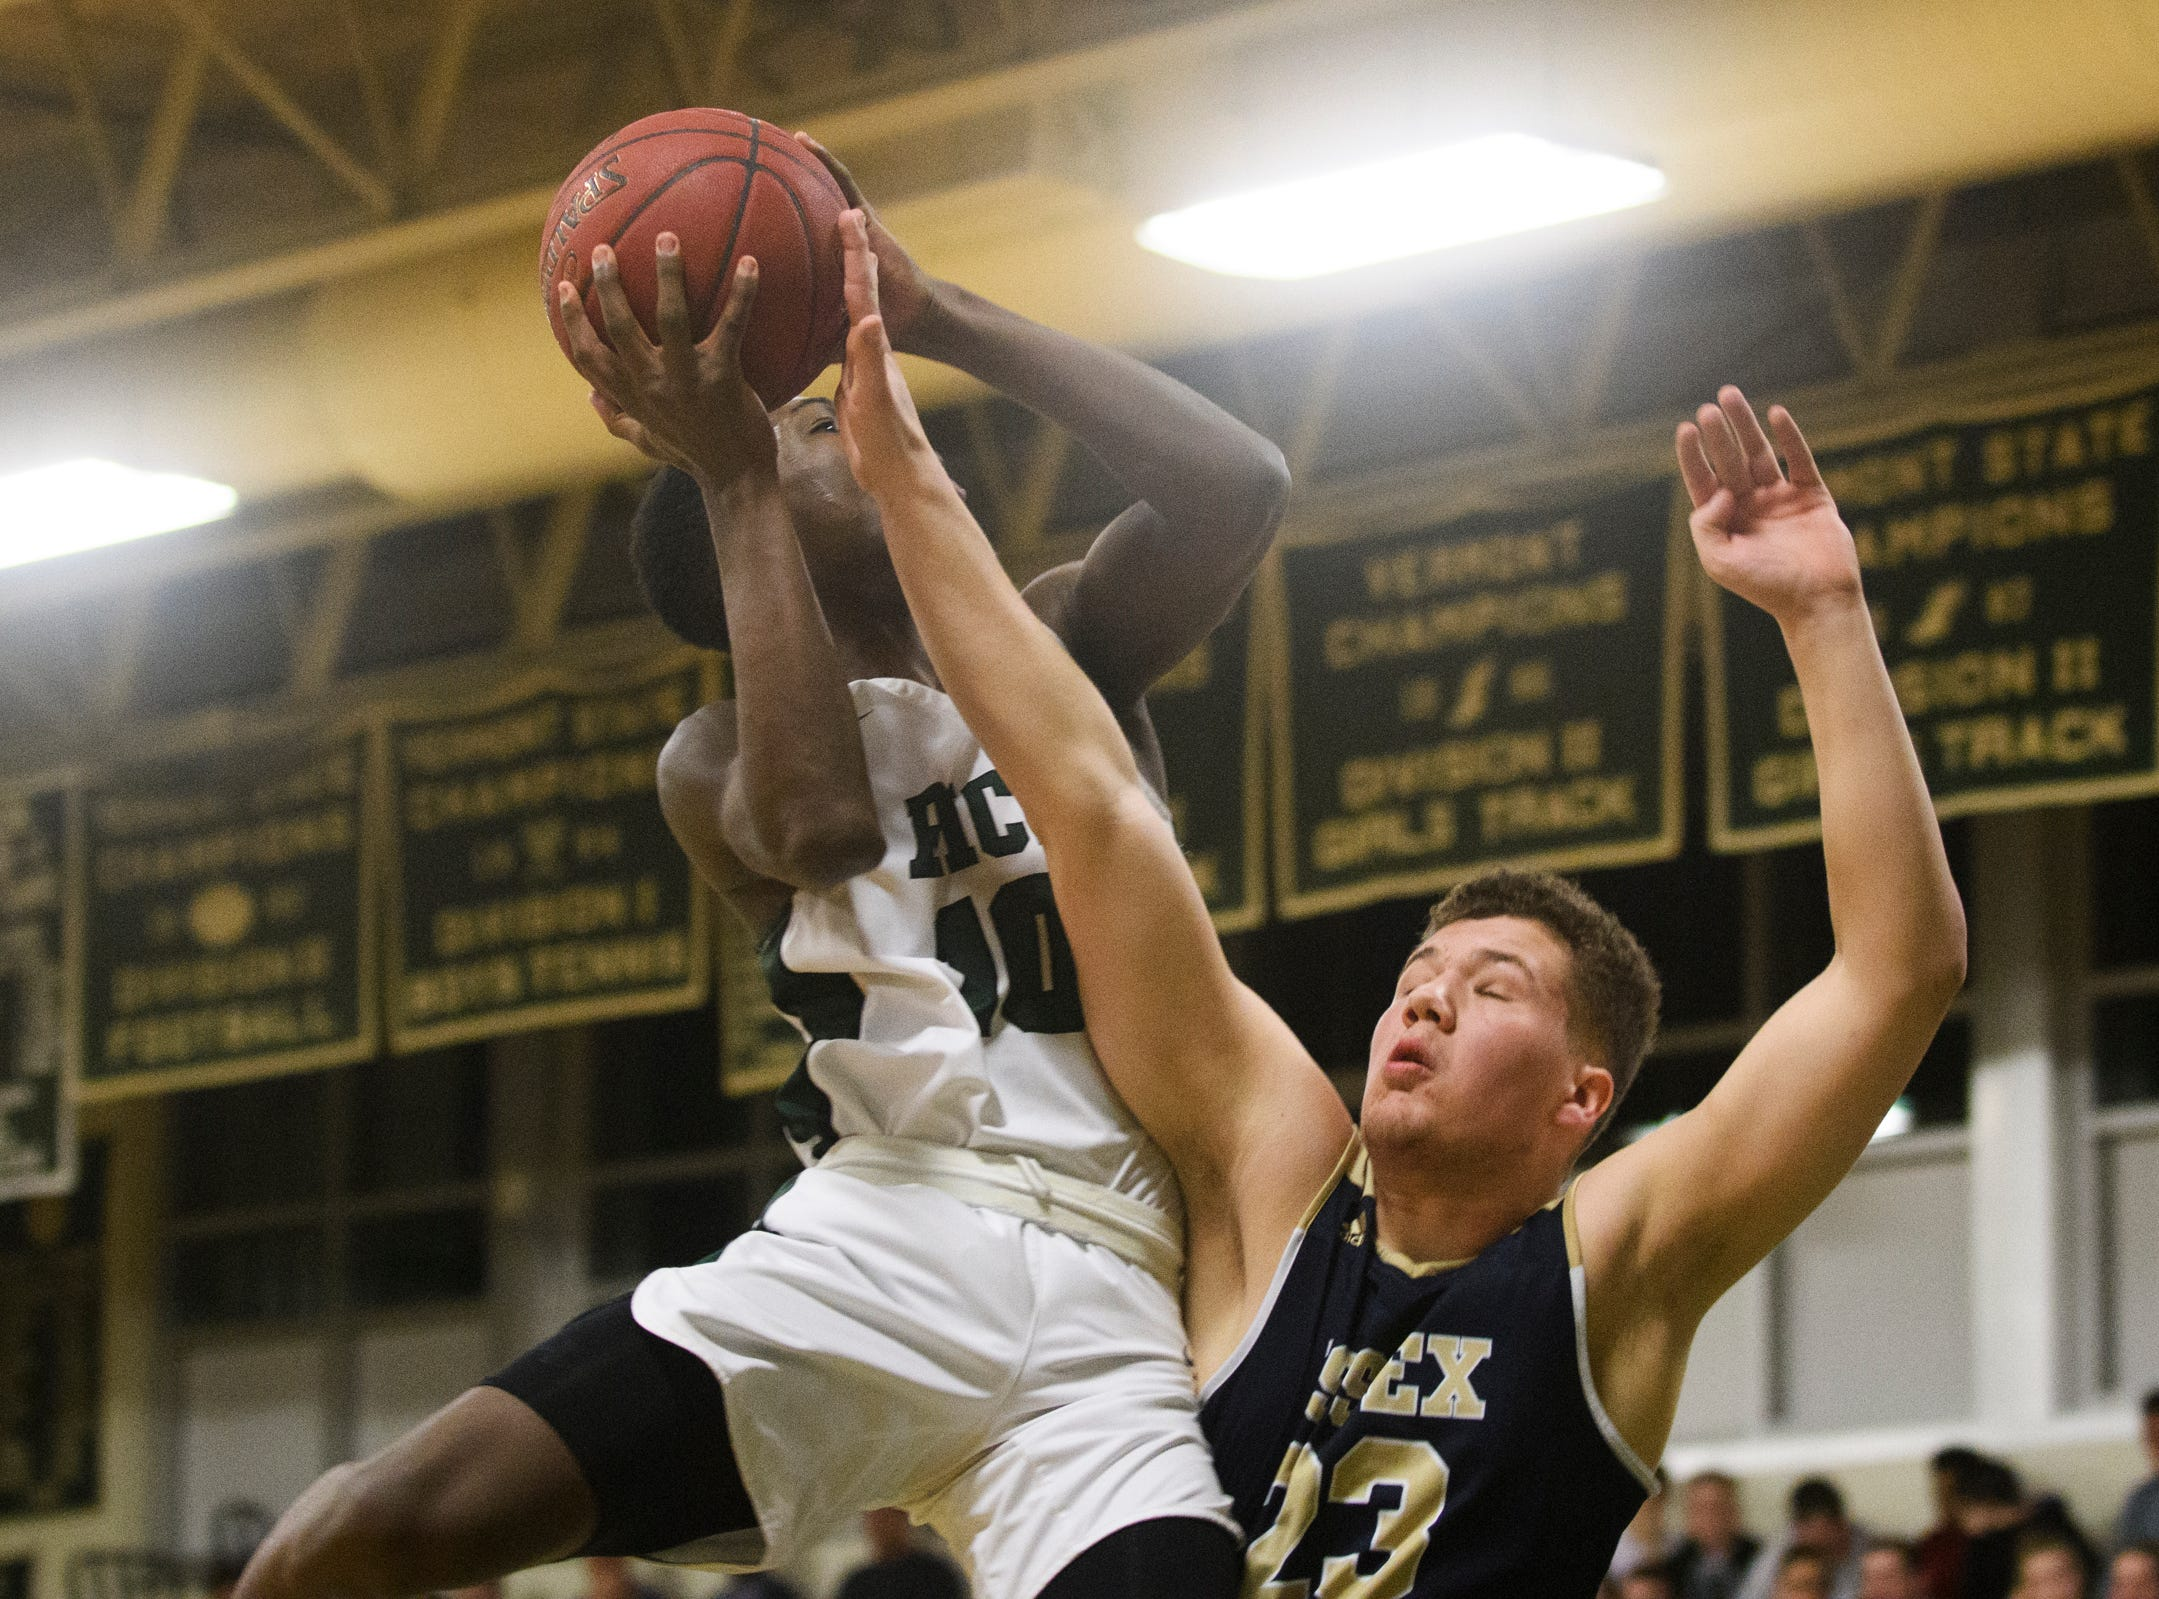 Rice's Leo Chaikin (10) leaps for a lay up over Essex's Anthony Decarvalho (23) during the boys quarterfinal basketball game between the Essex Hornets and the Rice Green Knights at Rice Memorial High School on Friday night March 8, 2019 in South Burlington, Vermont.